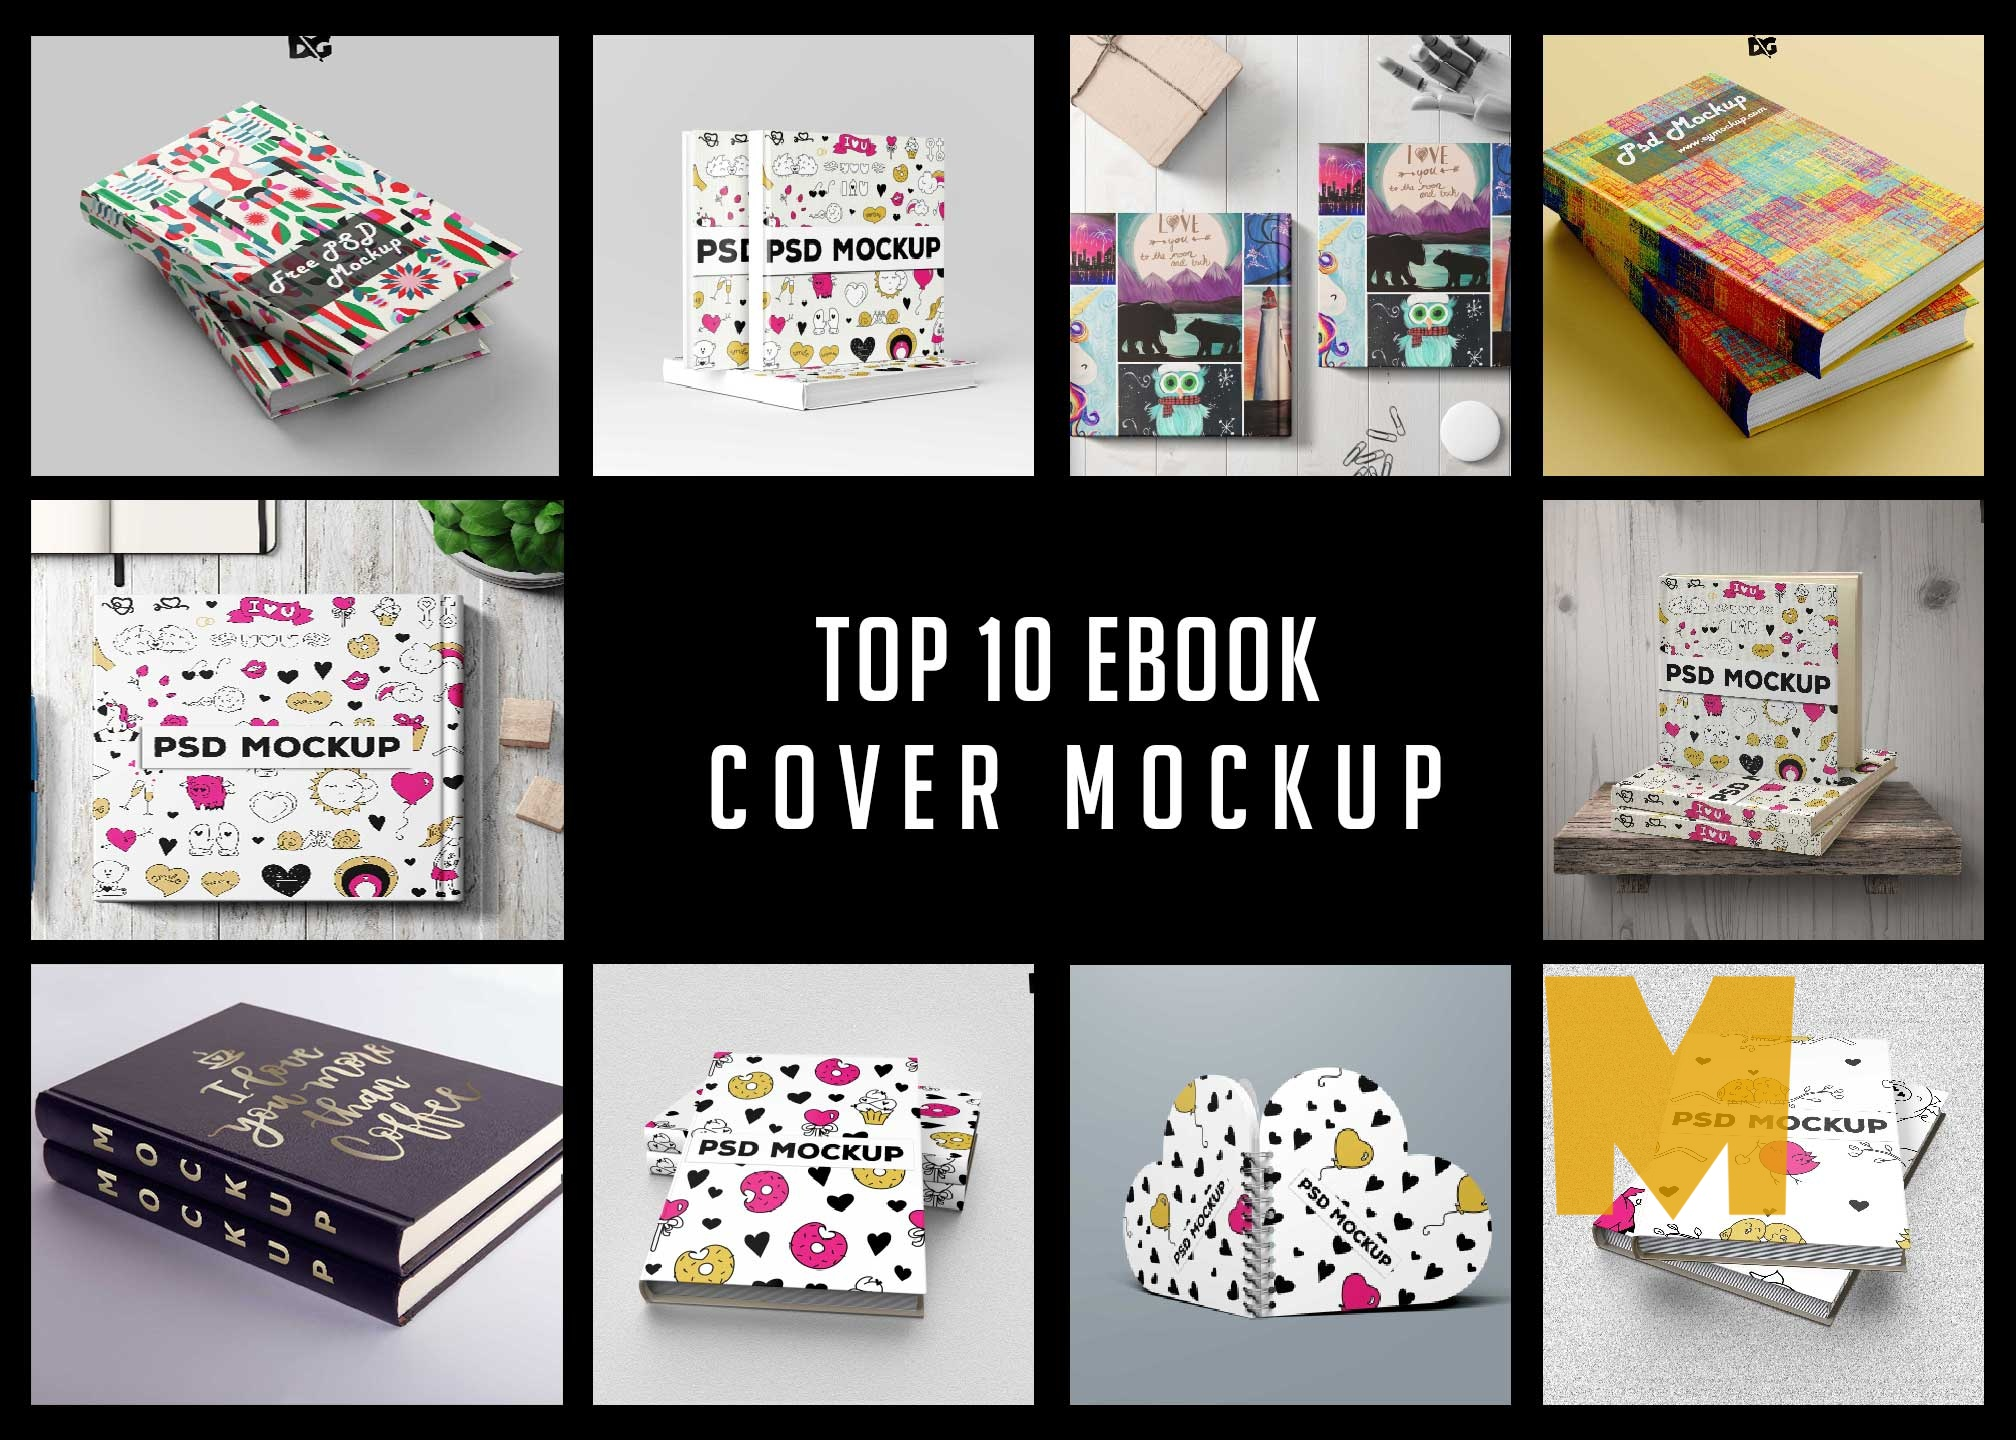 Top 10 Ebook Cover Mockup